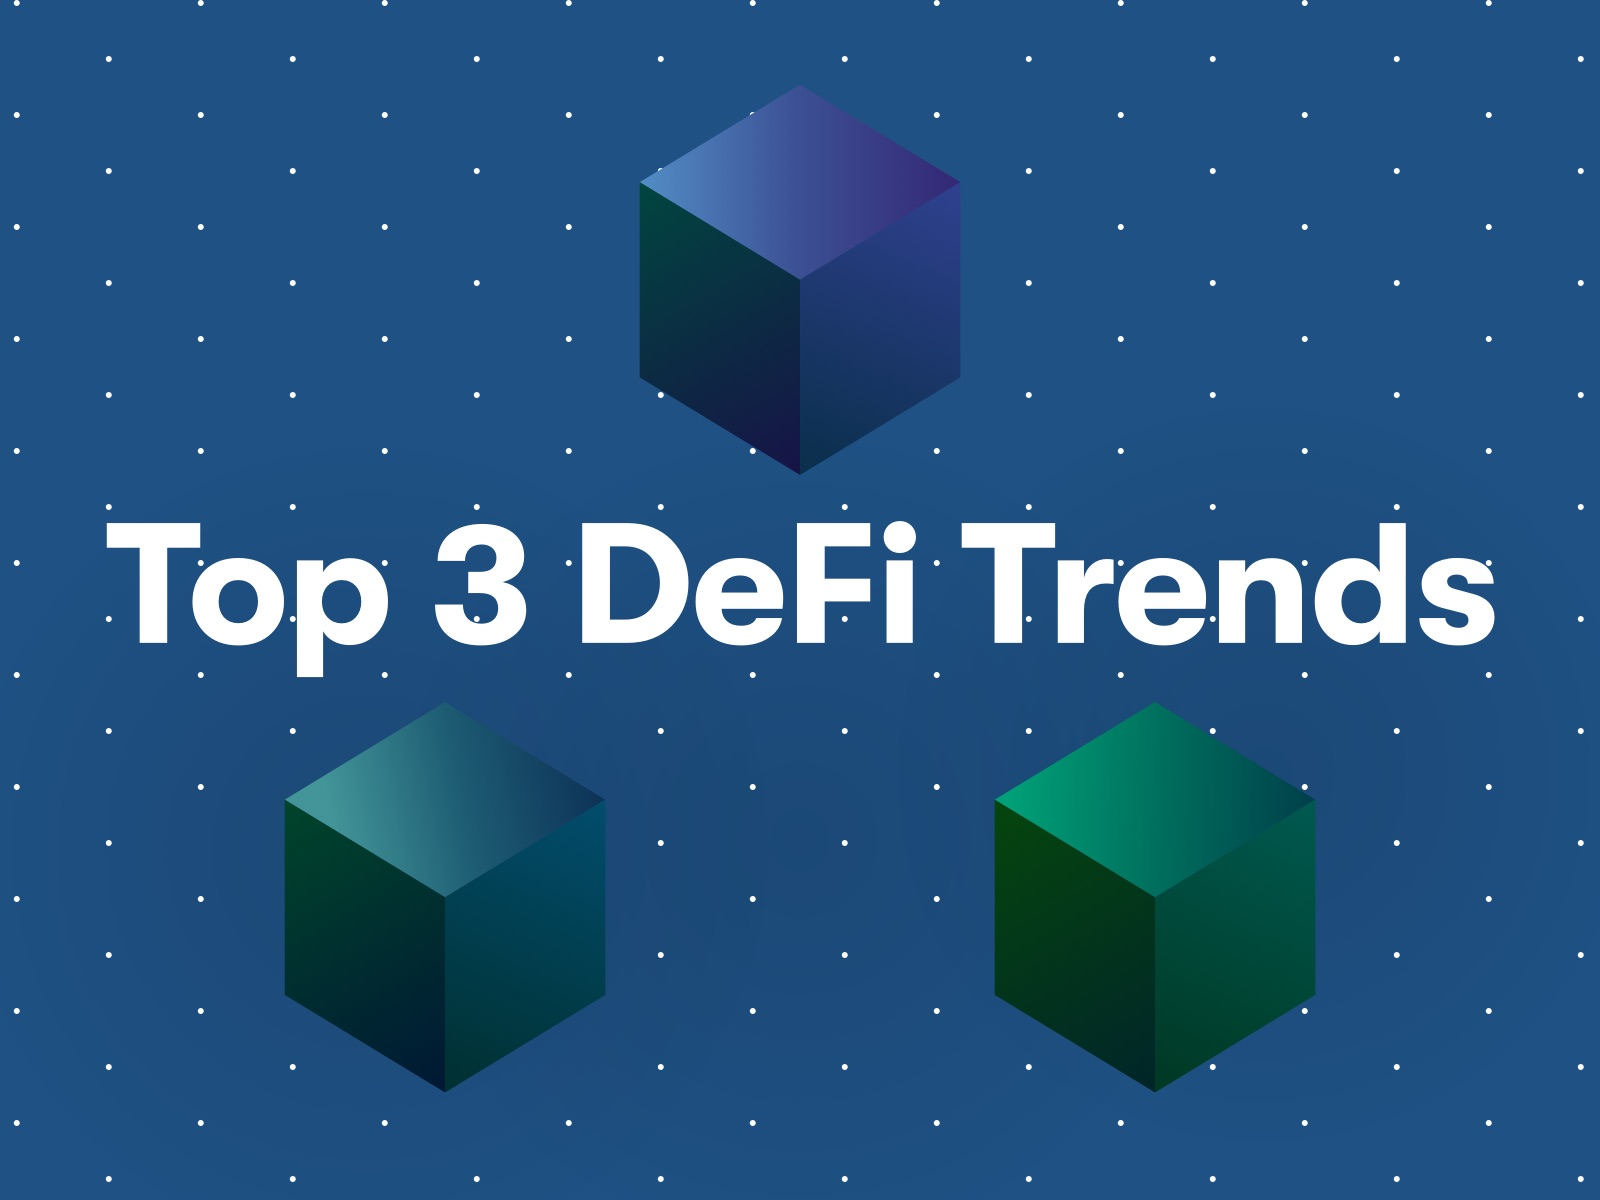 Top 3 DeFi Trends